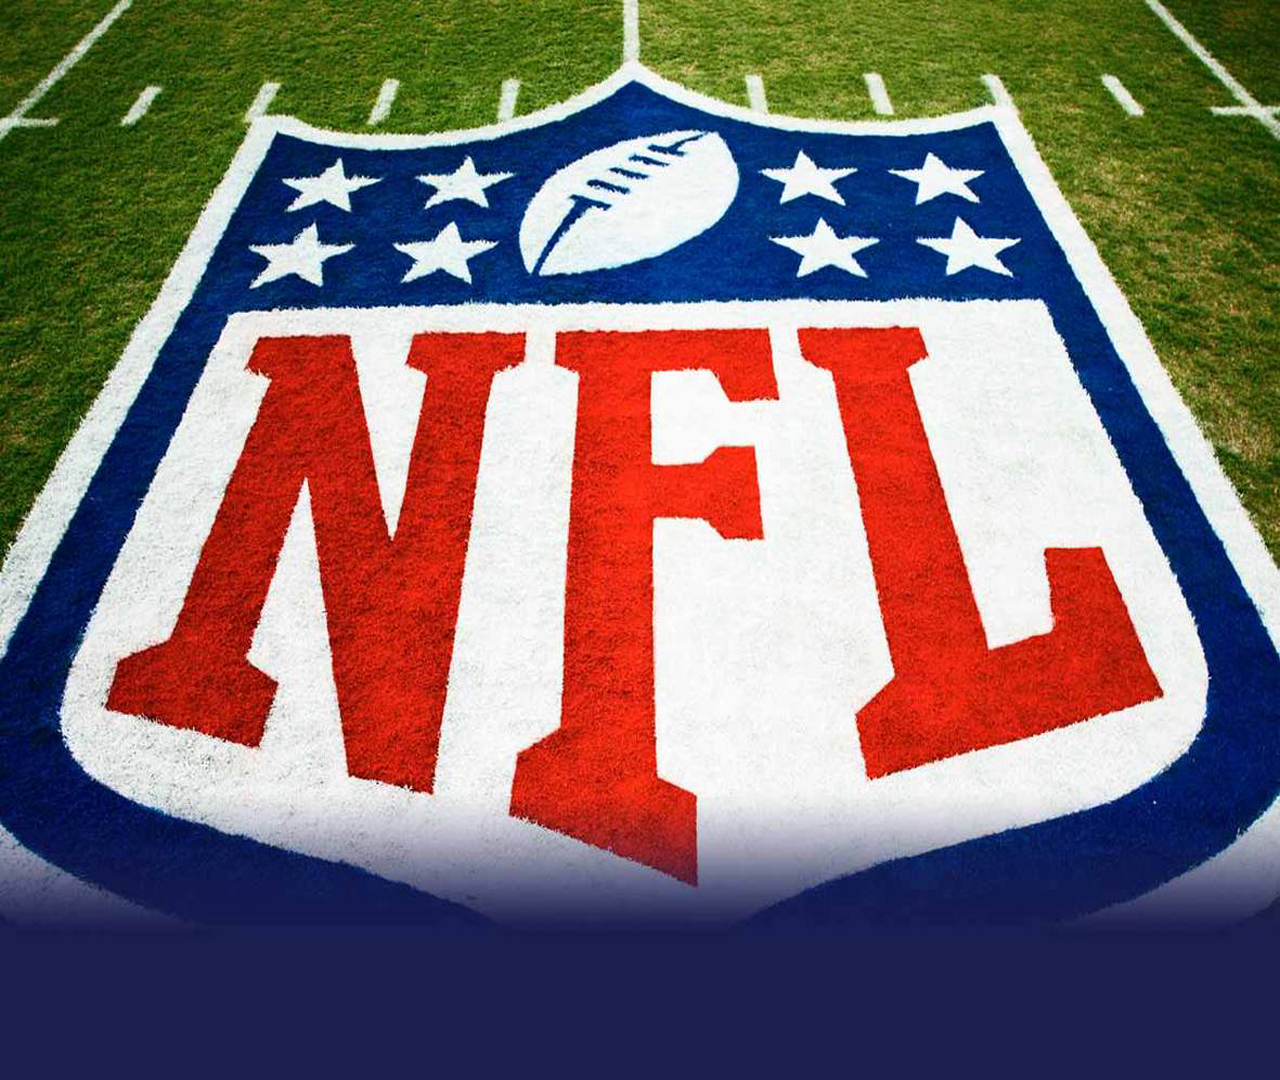 NFL 2012   Download NFL Football HD Wallpapers for iPad and Nexus 1280x1080